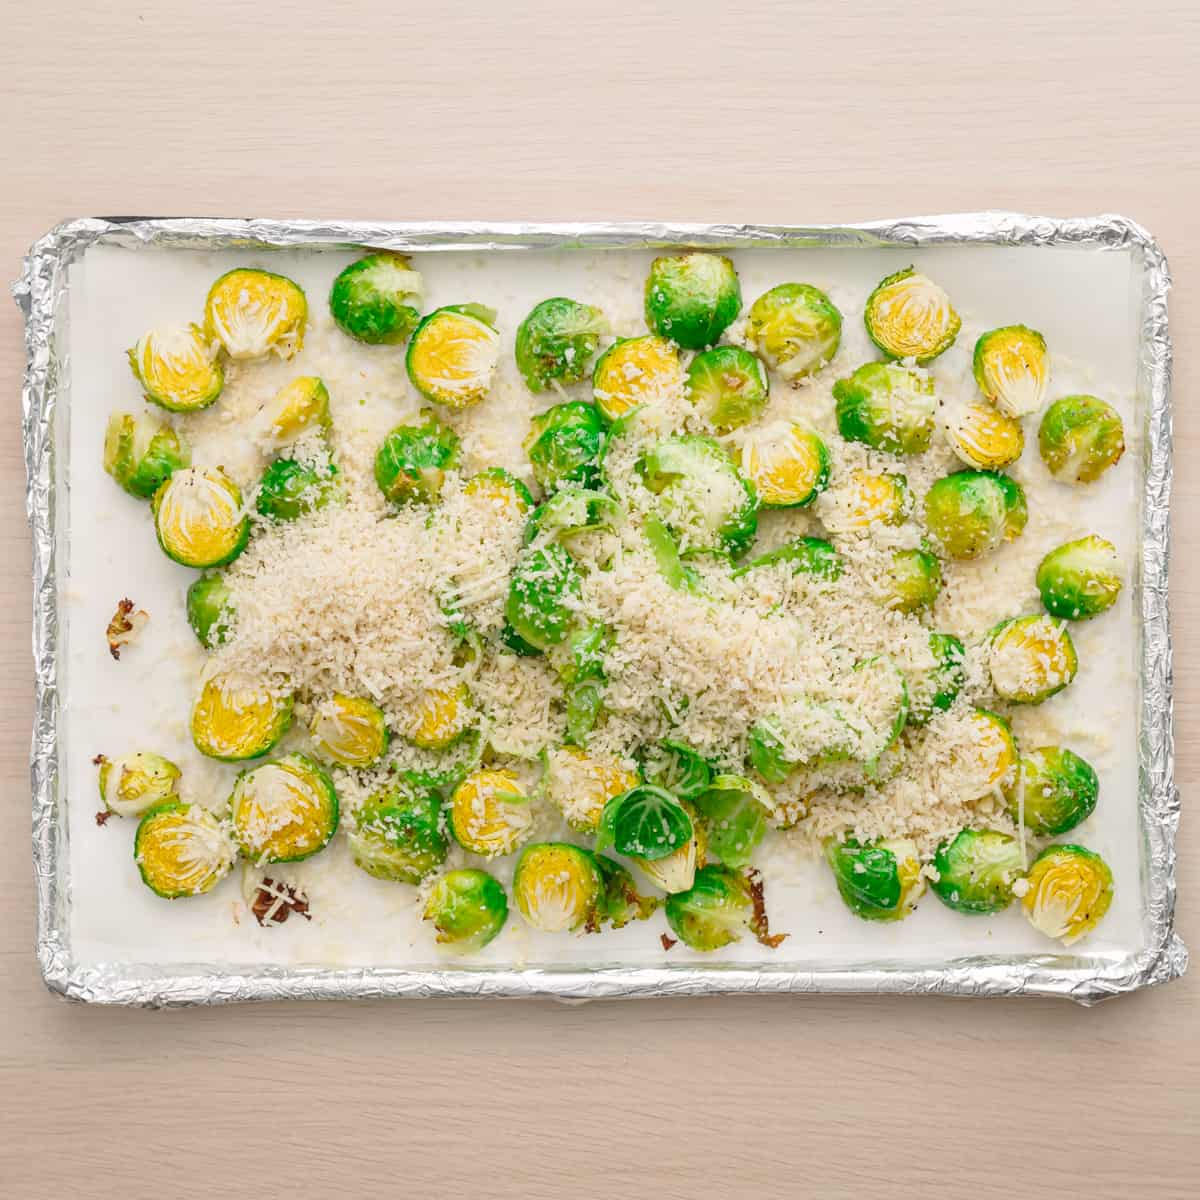 Brussels sprouts with parmesan, panko breadcrumbs on a baking sheet.